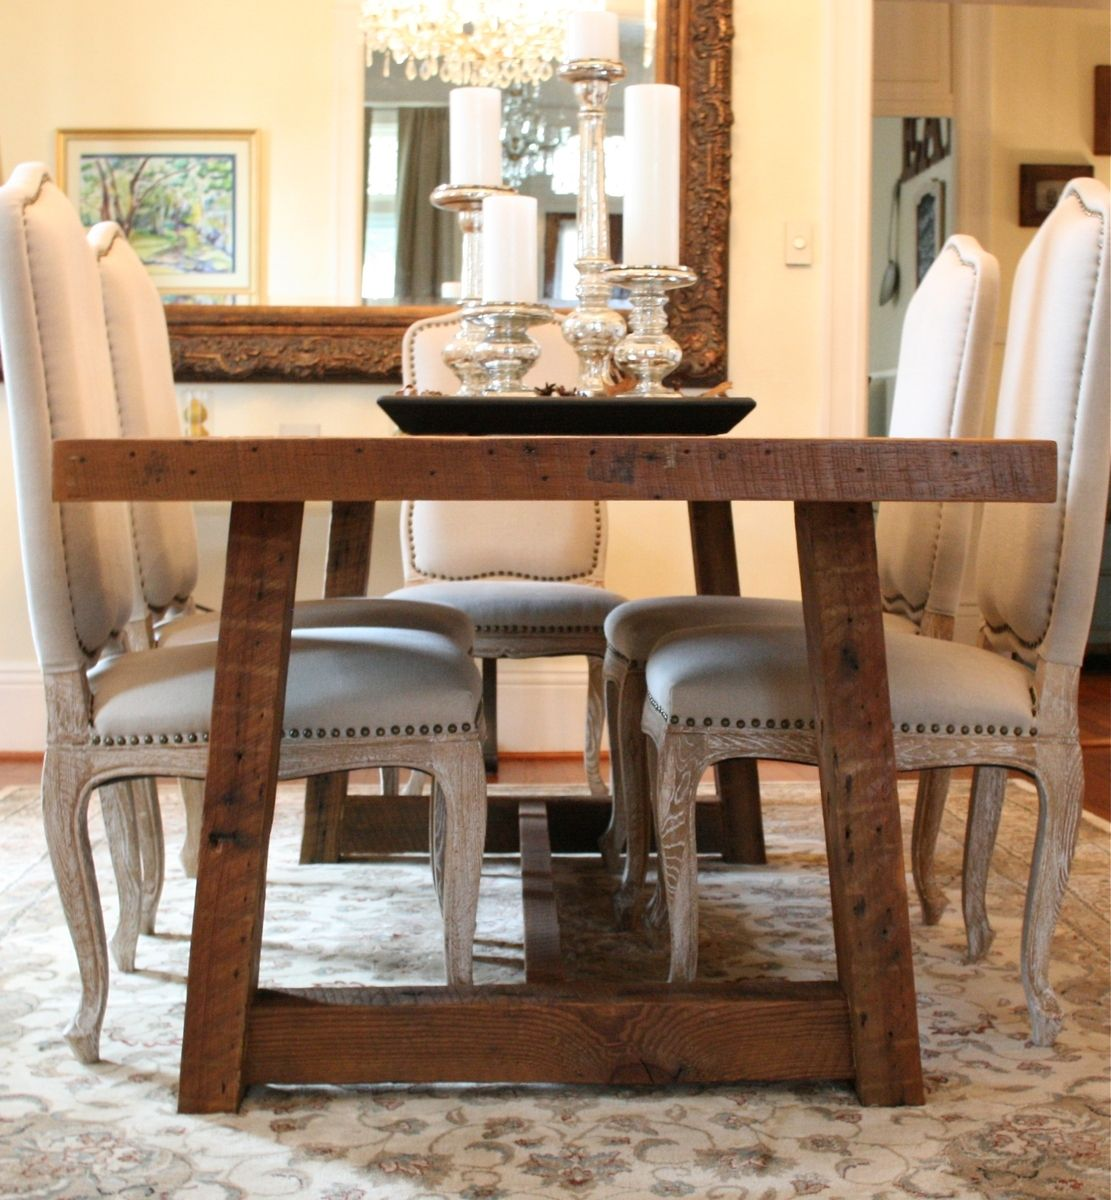 Pictures Of Dining Tables Custom The Pecky Dining Table Farmhouse Style Table Made